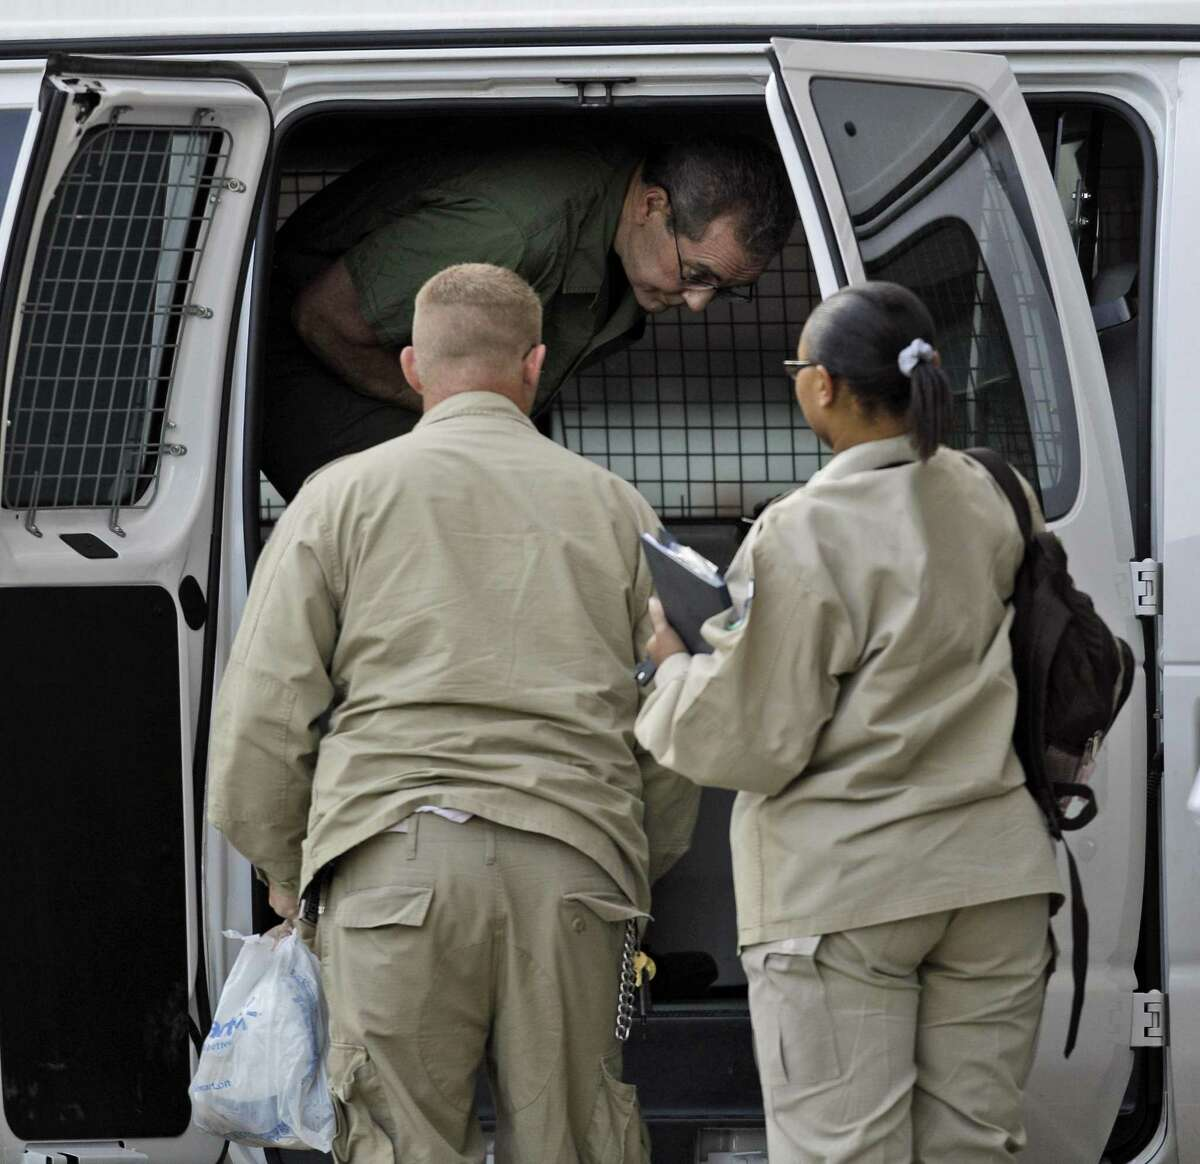 R. Allen Stanford arrives in custody at the federal courthouse for a hearing Tuesday, Aug. 24, 2010 in Houston. Investors and the court-appointed receiver in the Stanford Financial Ponzi scheme case have settled claims against Stanford's former counsel Proskauer Rose LLP.